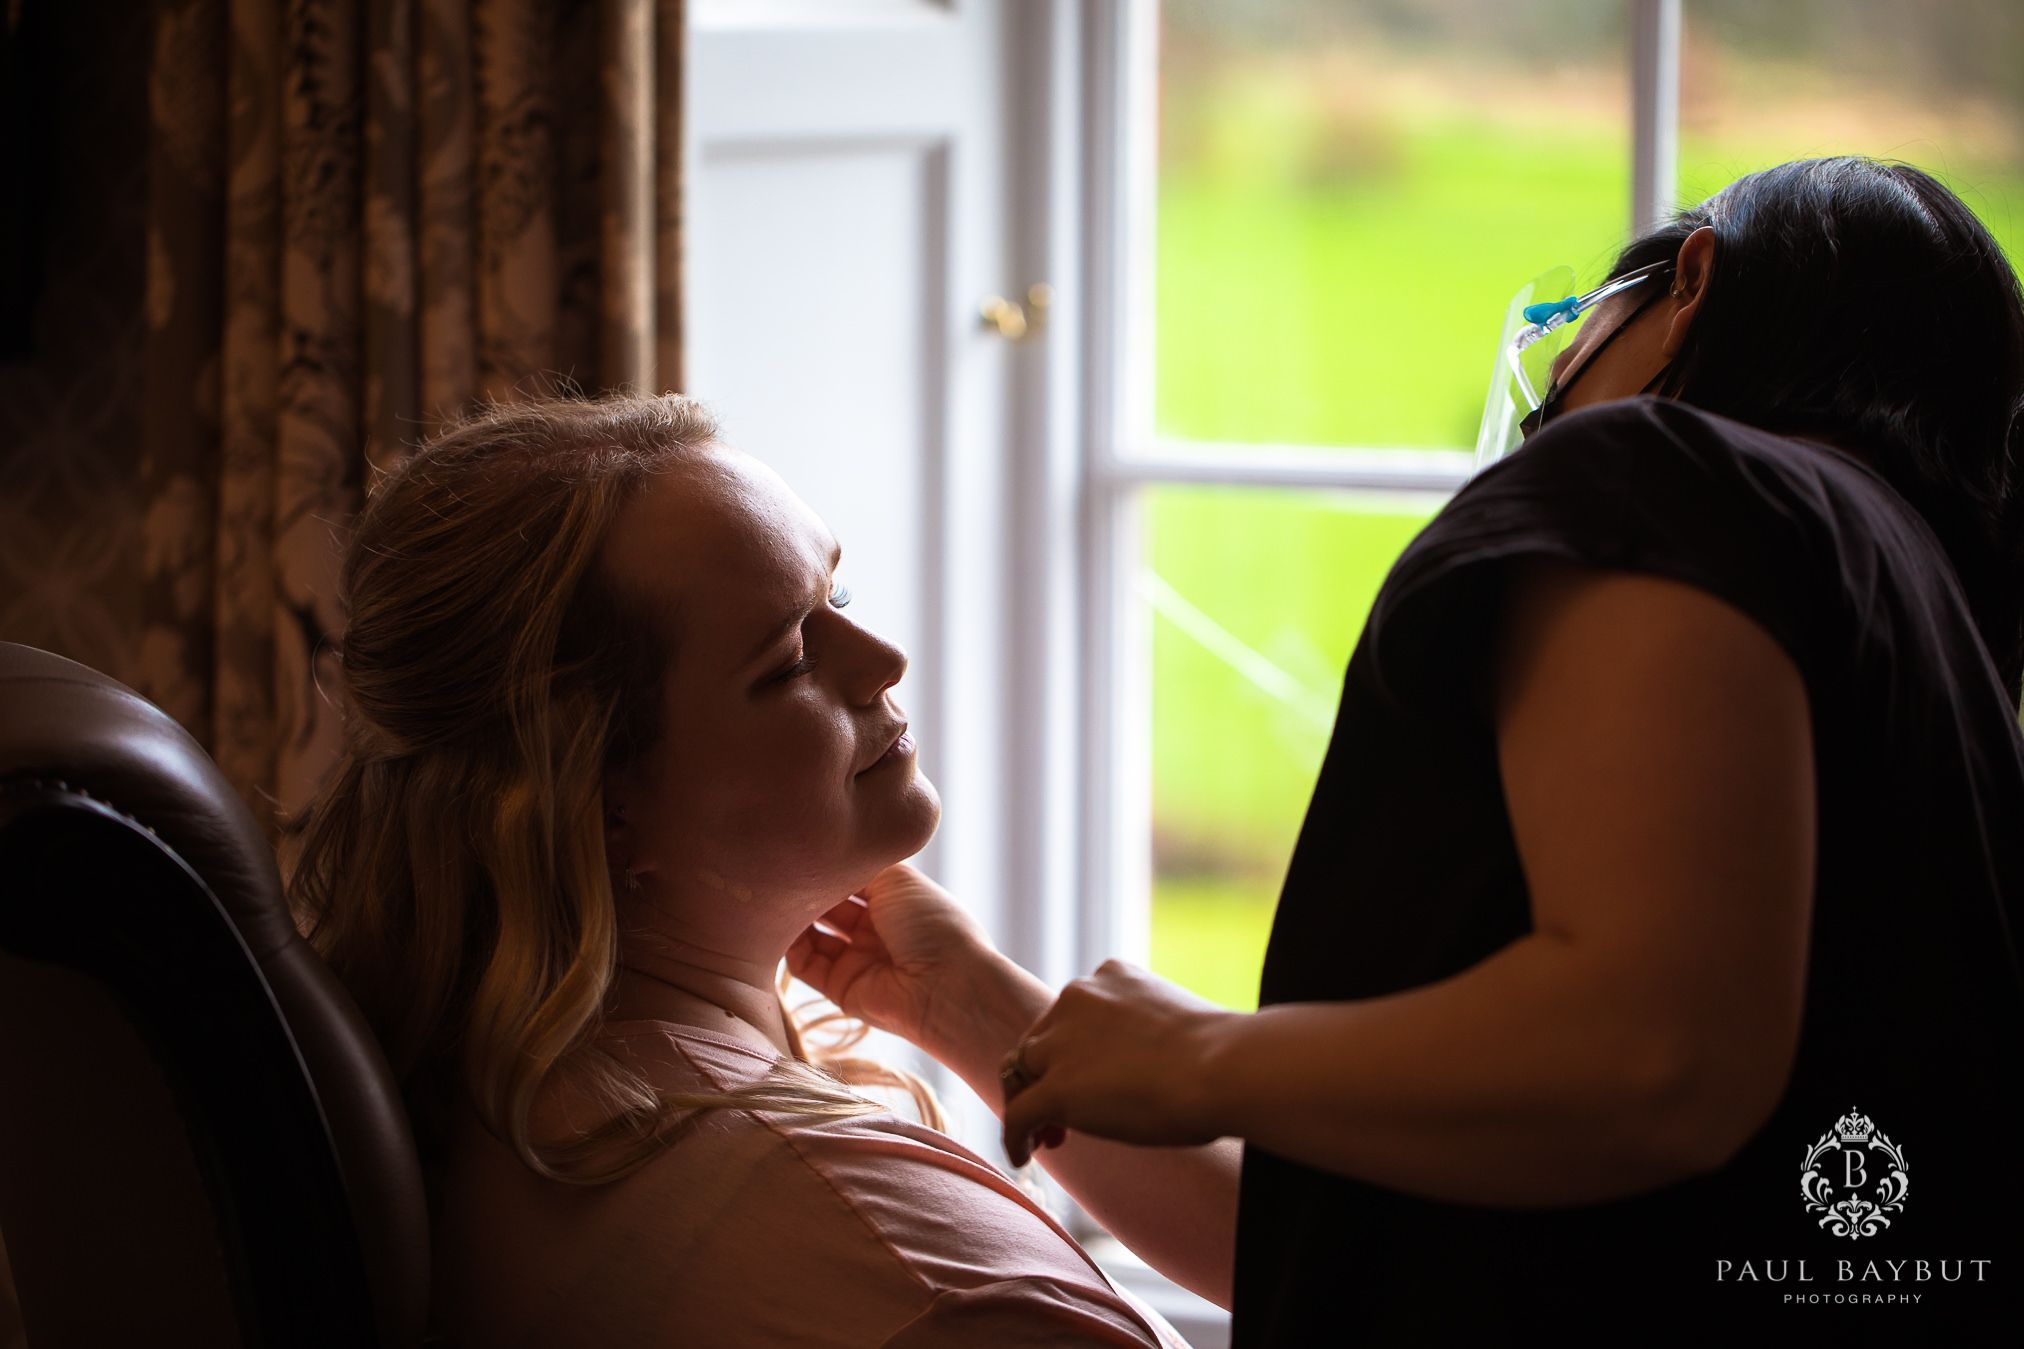 Bride getting ready during bridal prep at Mottram Hall wedding